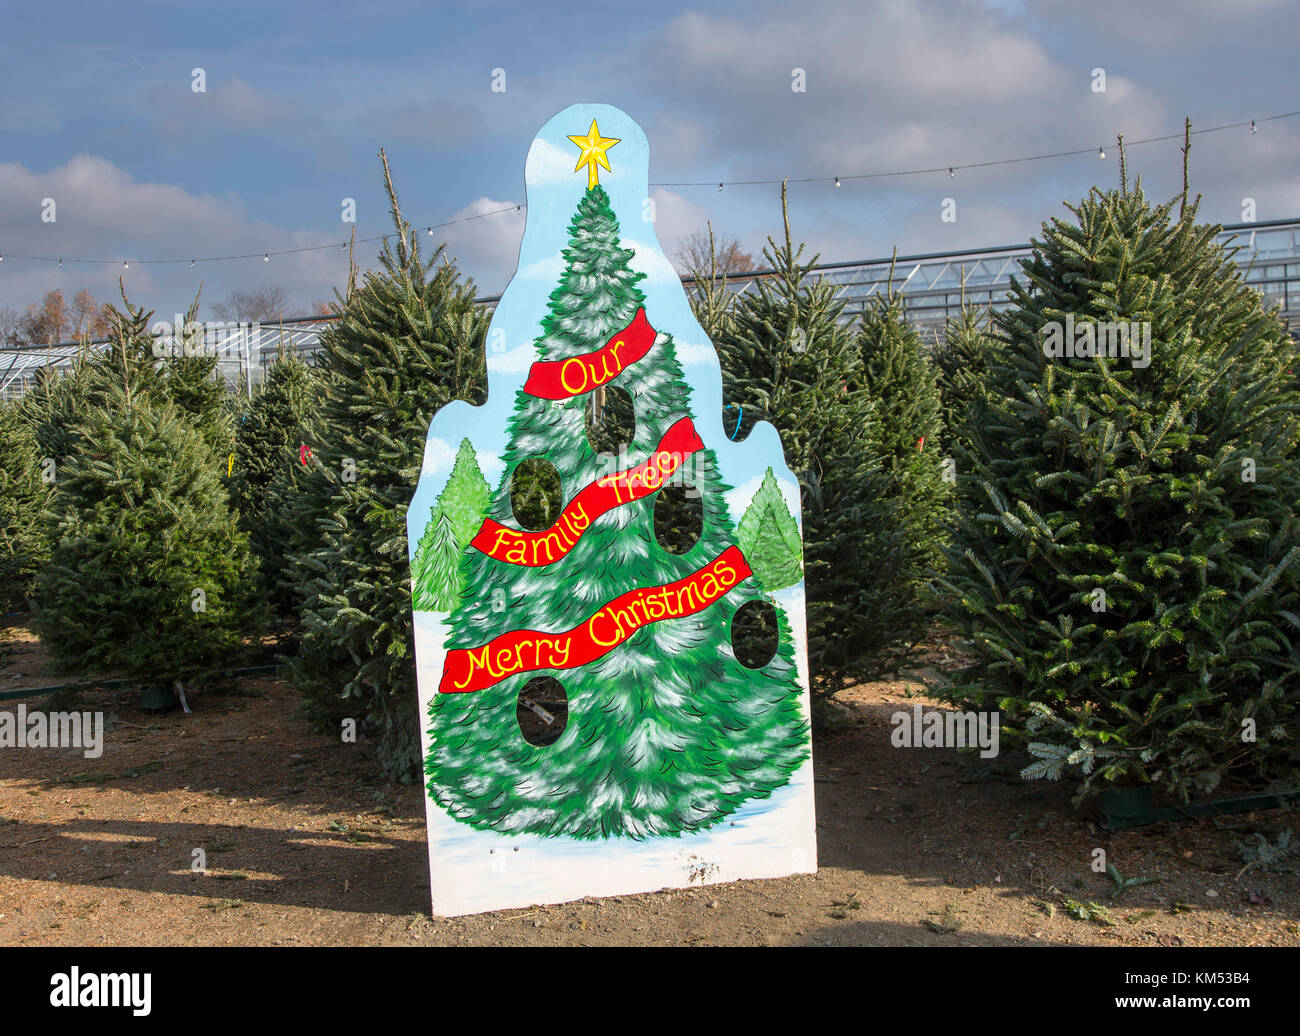 Christmas trees for sale at a nursery in New Jersey - Stock Image